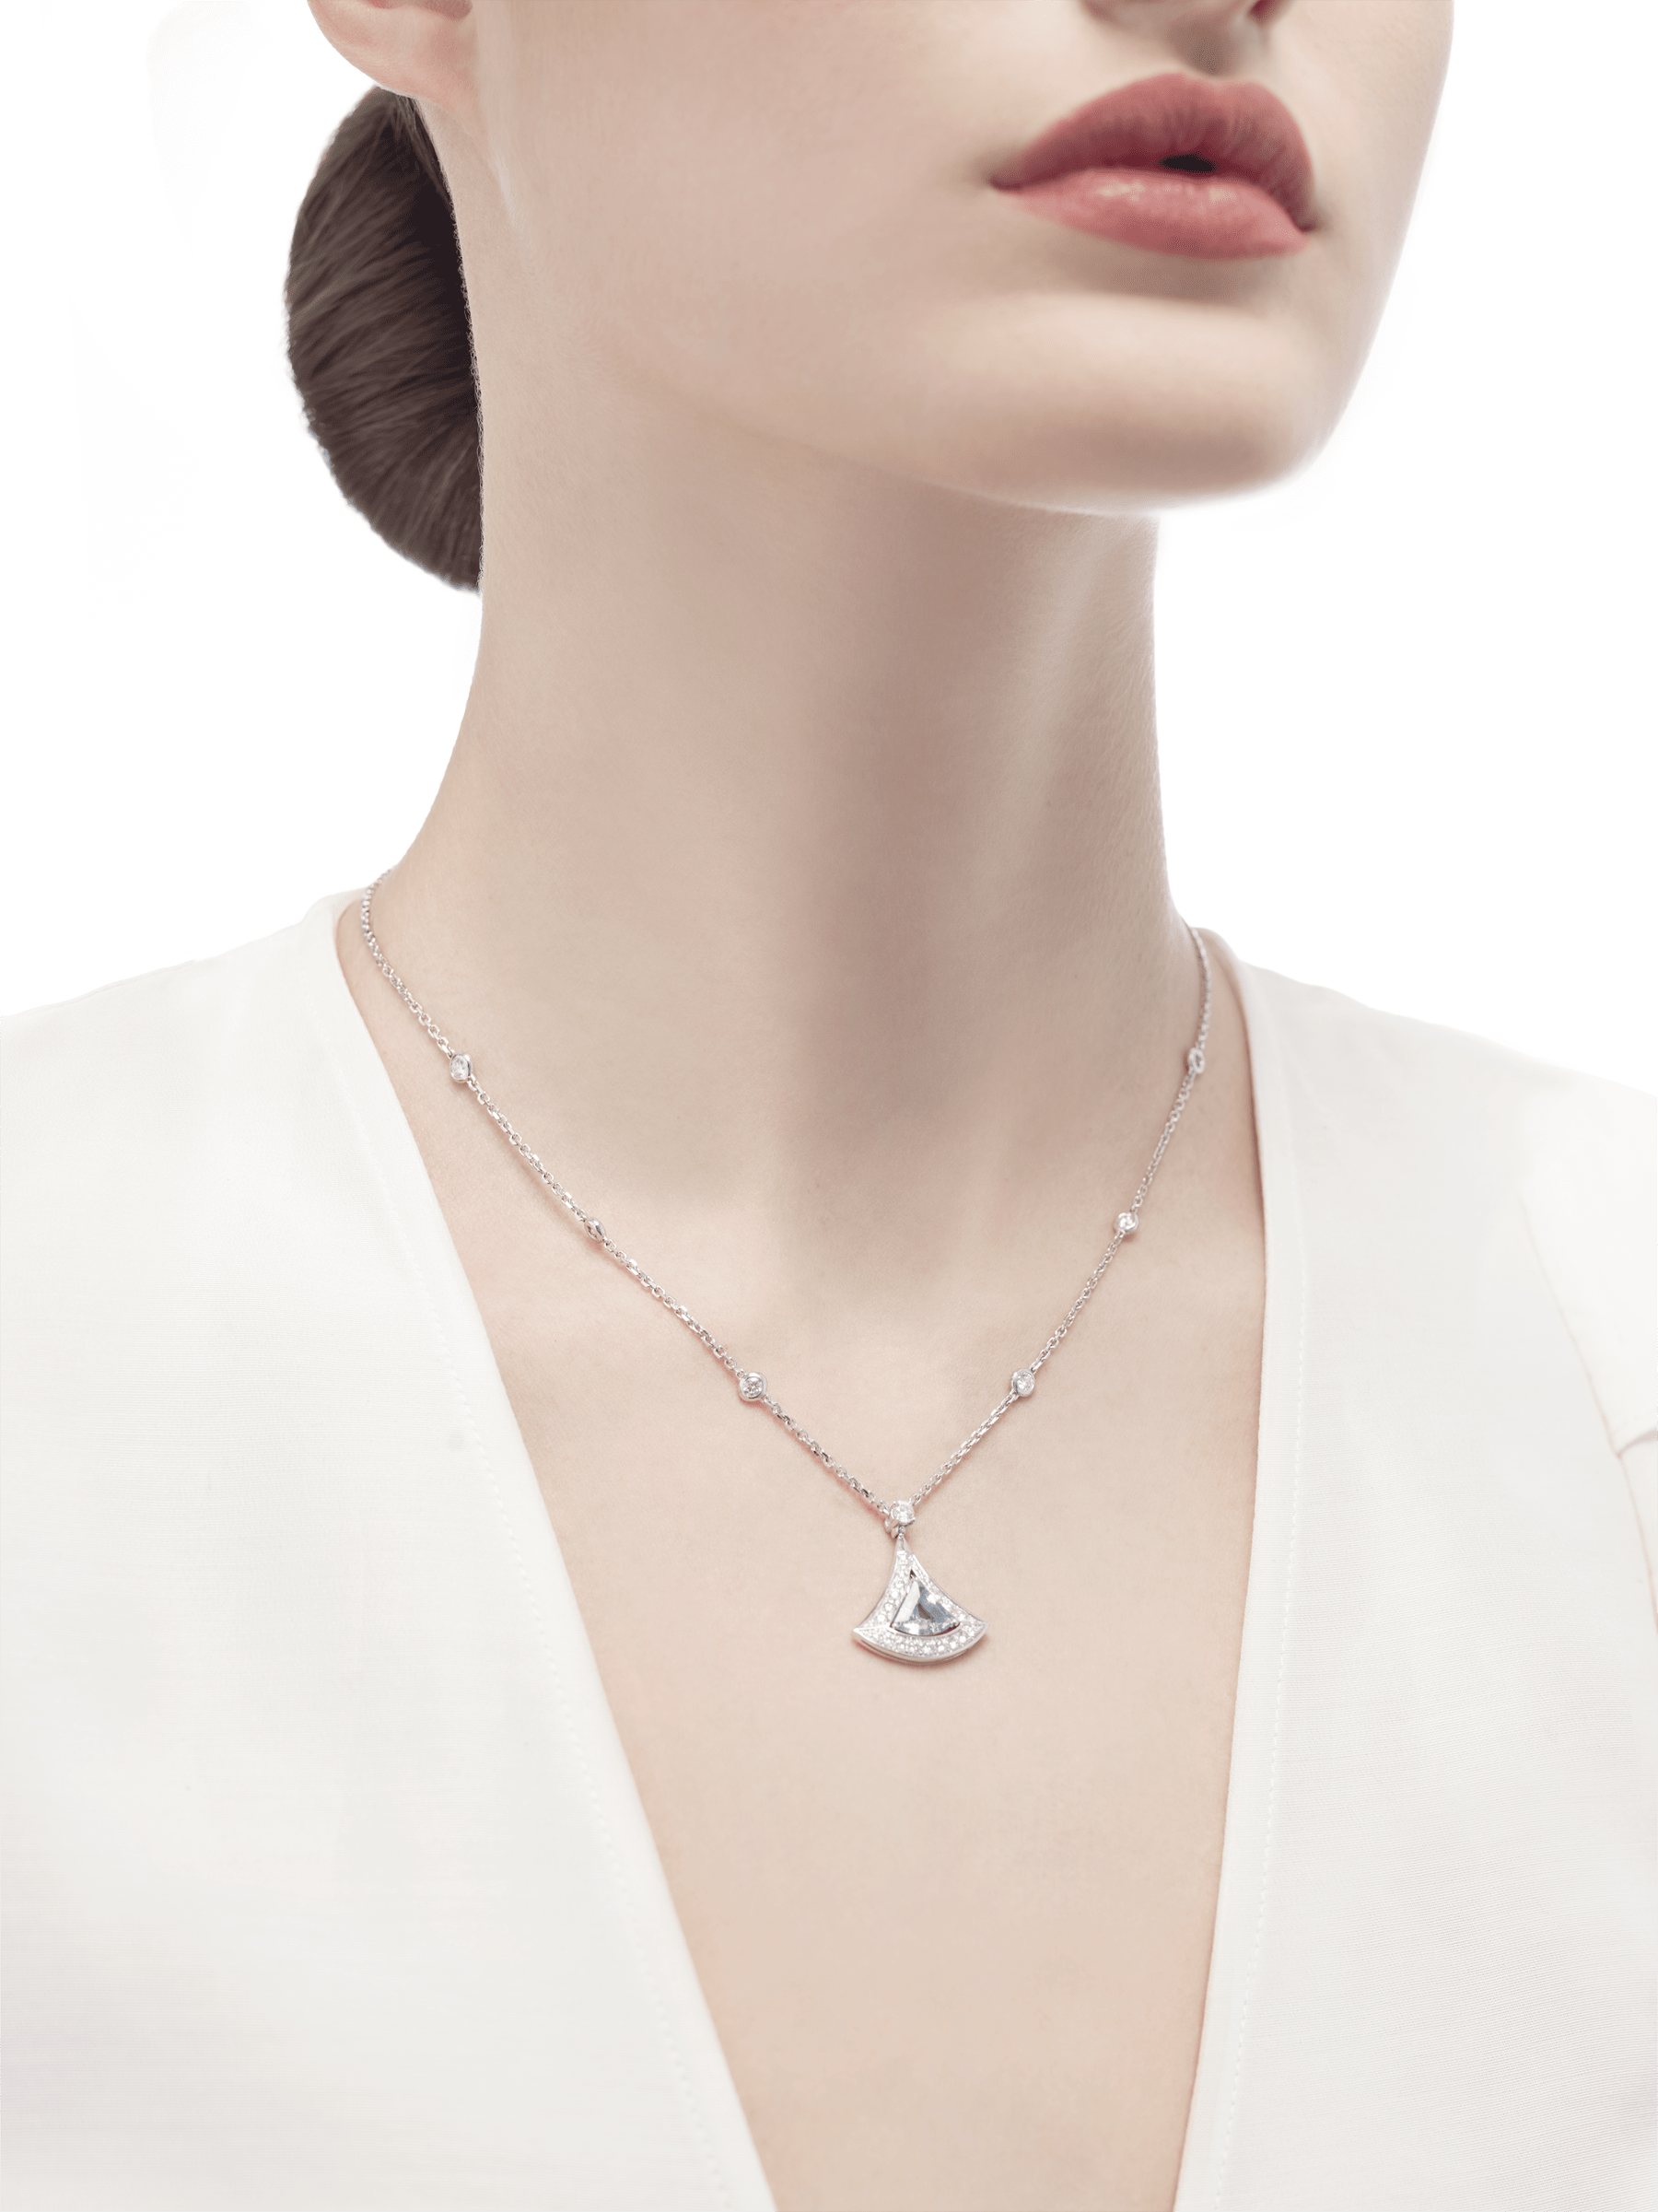 DIVAS' DREAM openwork necklace with 18 kt white gold chain set with diamonds and 18 kt white gold pendant with an aquamarine and set with pavé diamonds. 354052 image 3